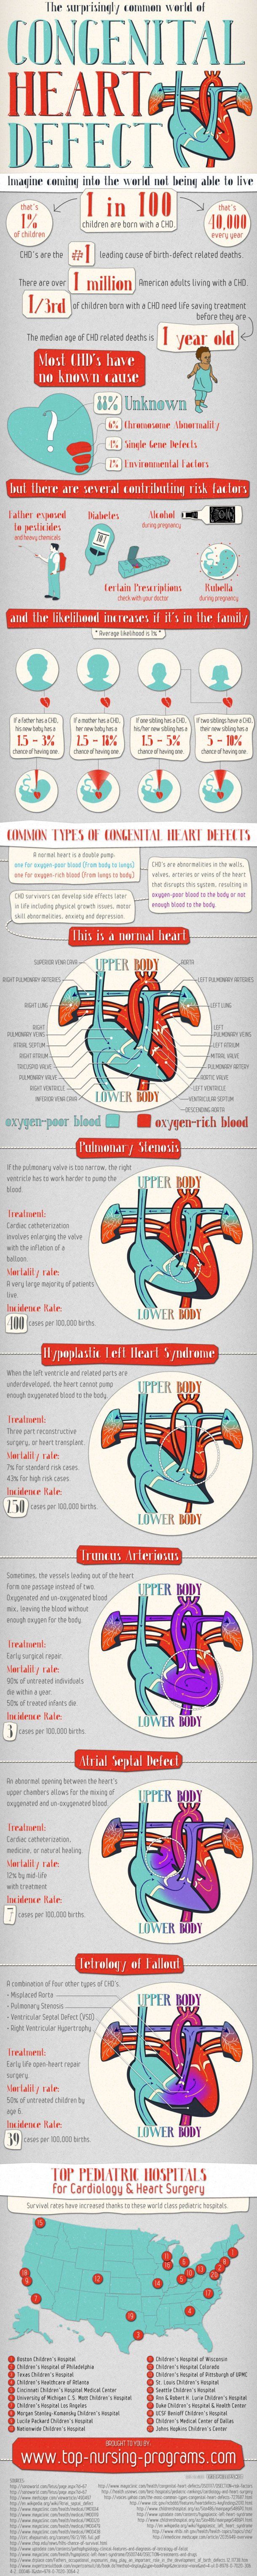 The Surprisingly Common World of Congenital Heart Defect[INFOGRAPHIC]